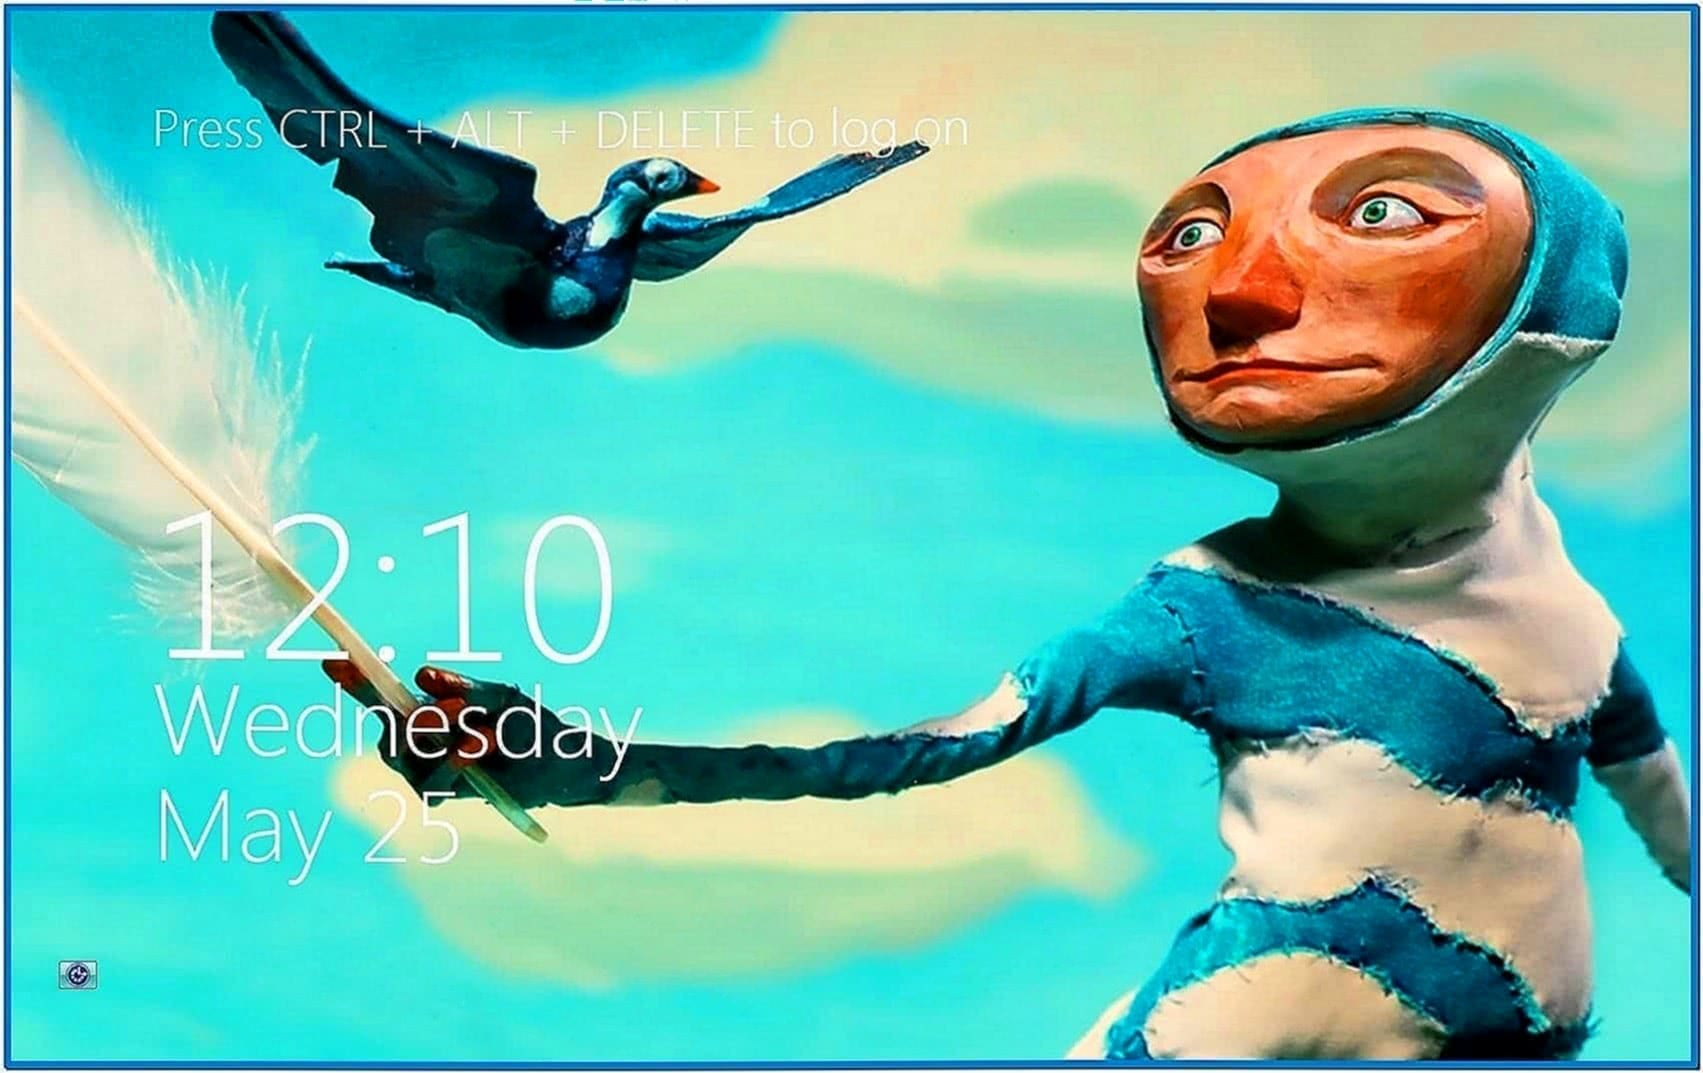 Windows 8 Metro Clock Screensaver